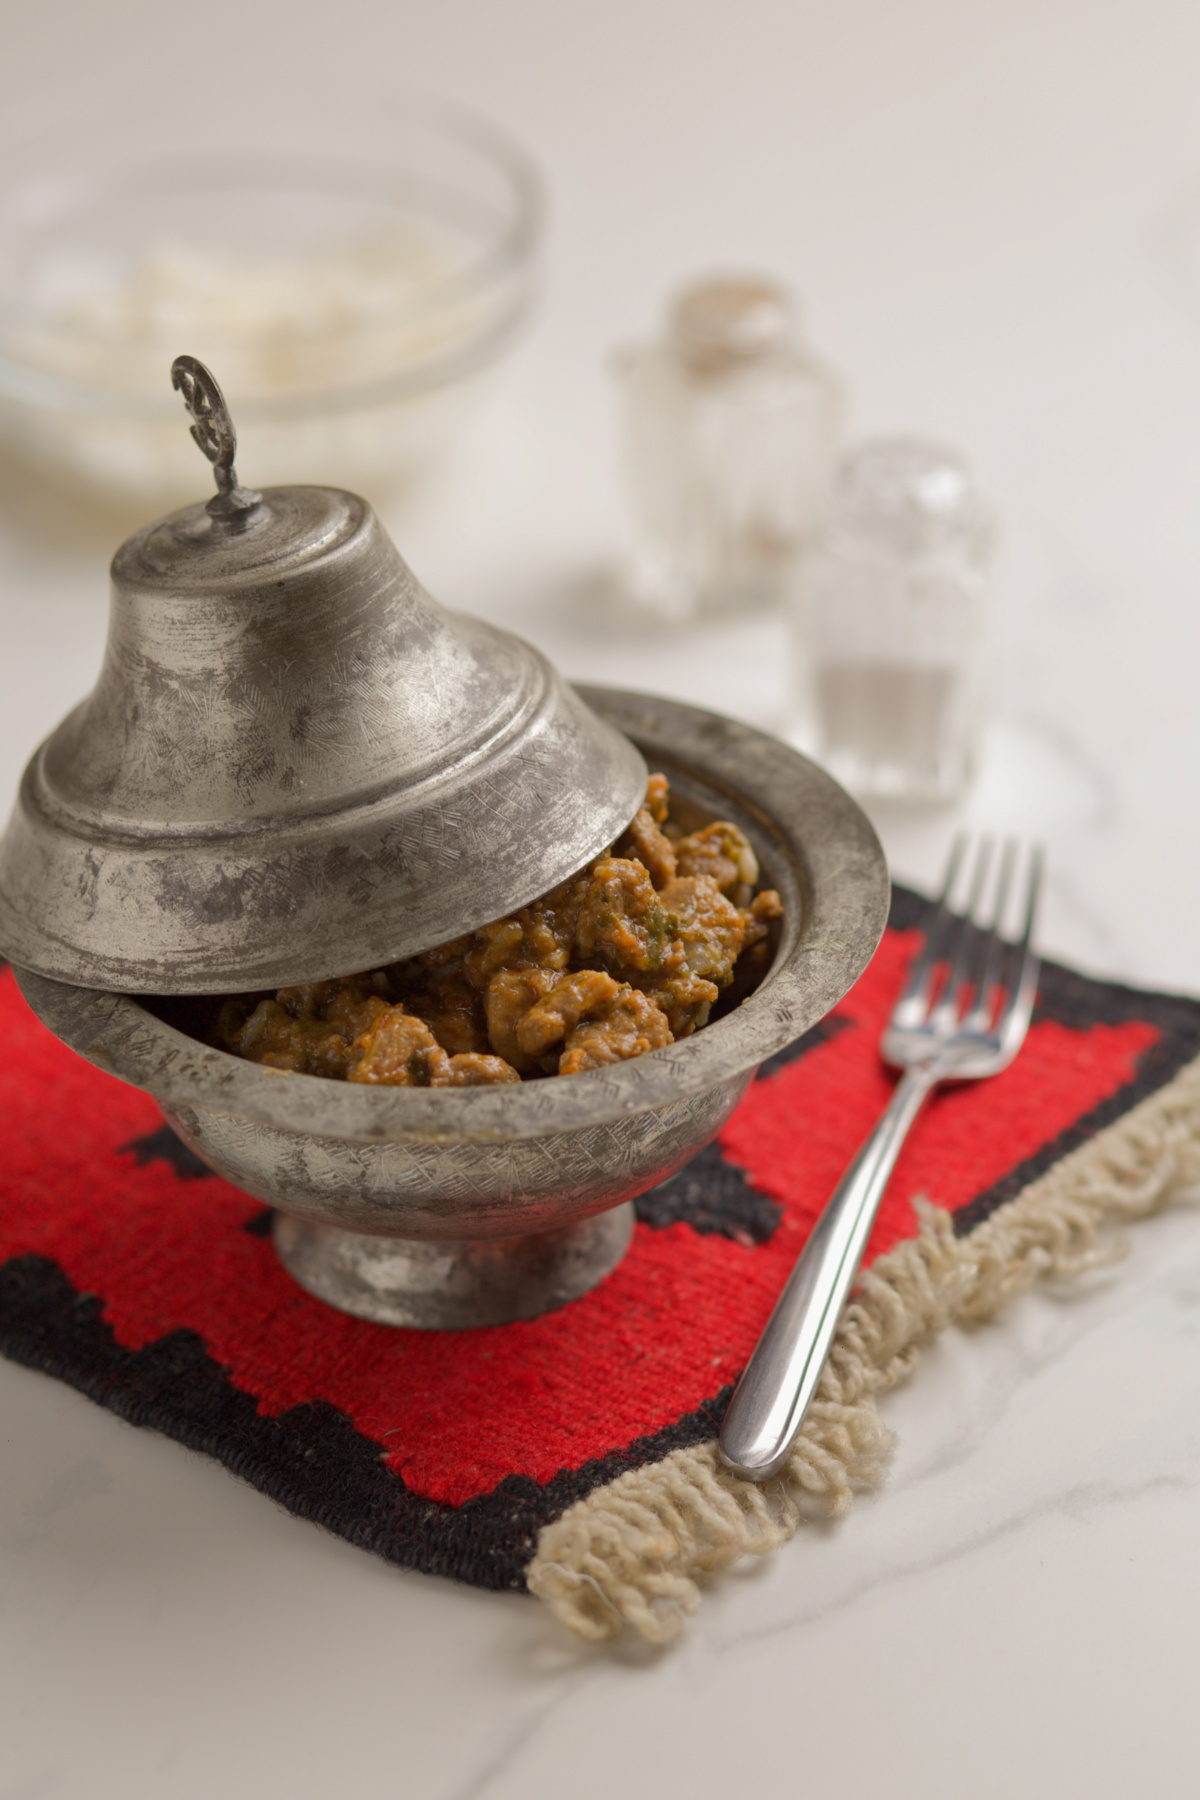 Meat dish served in a traditional bowl sahan.